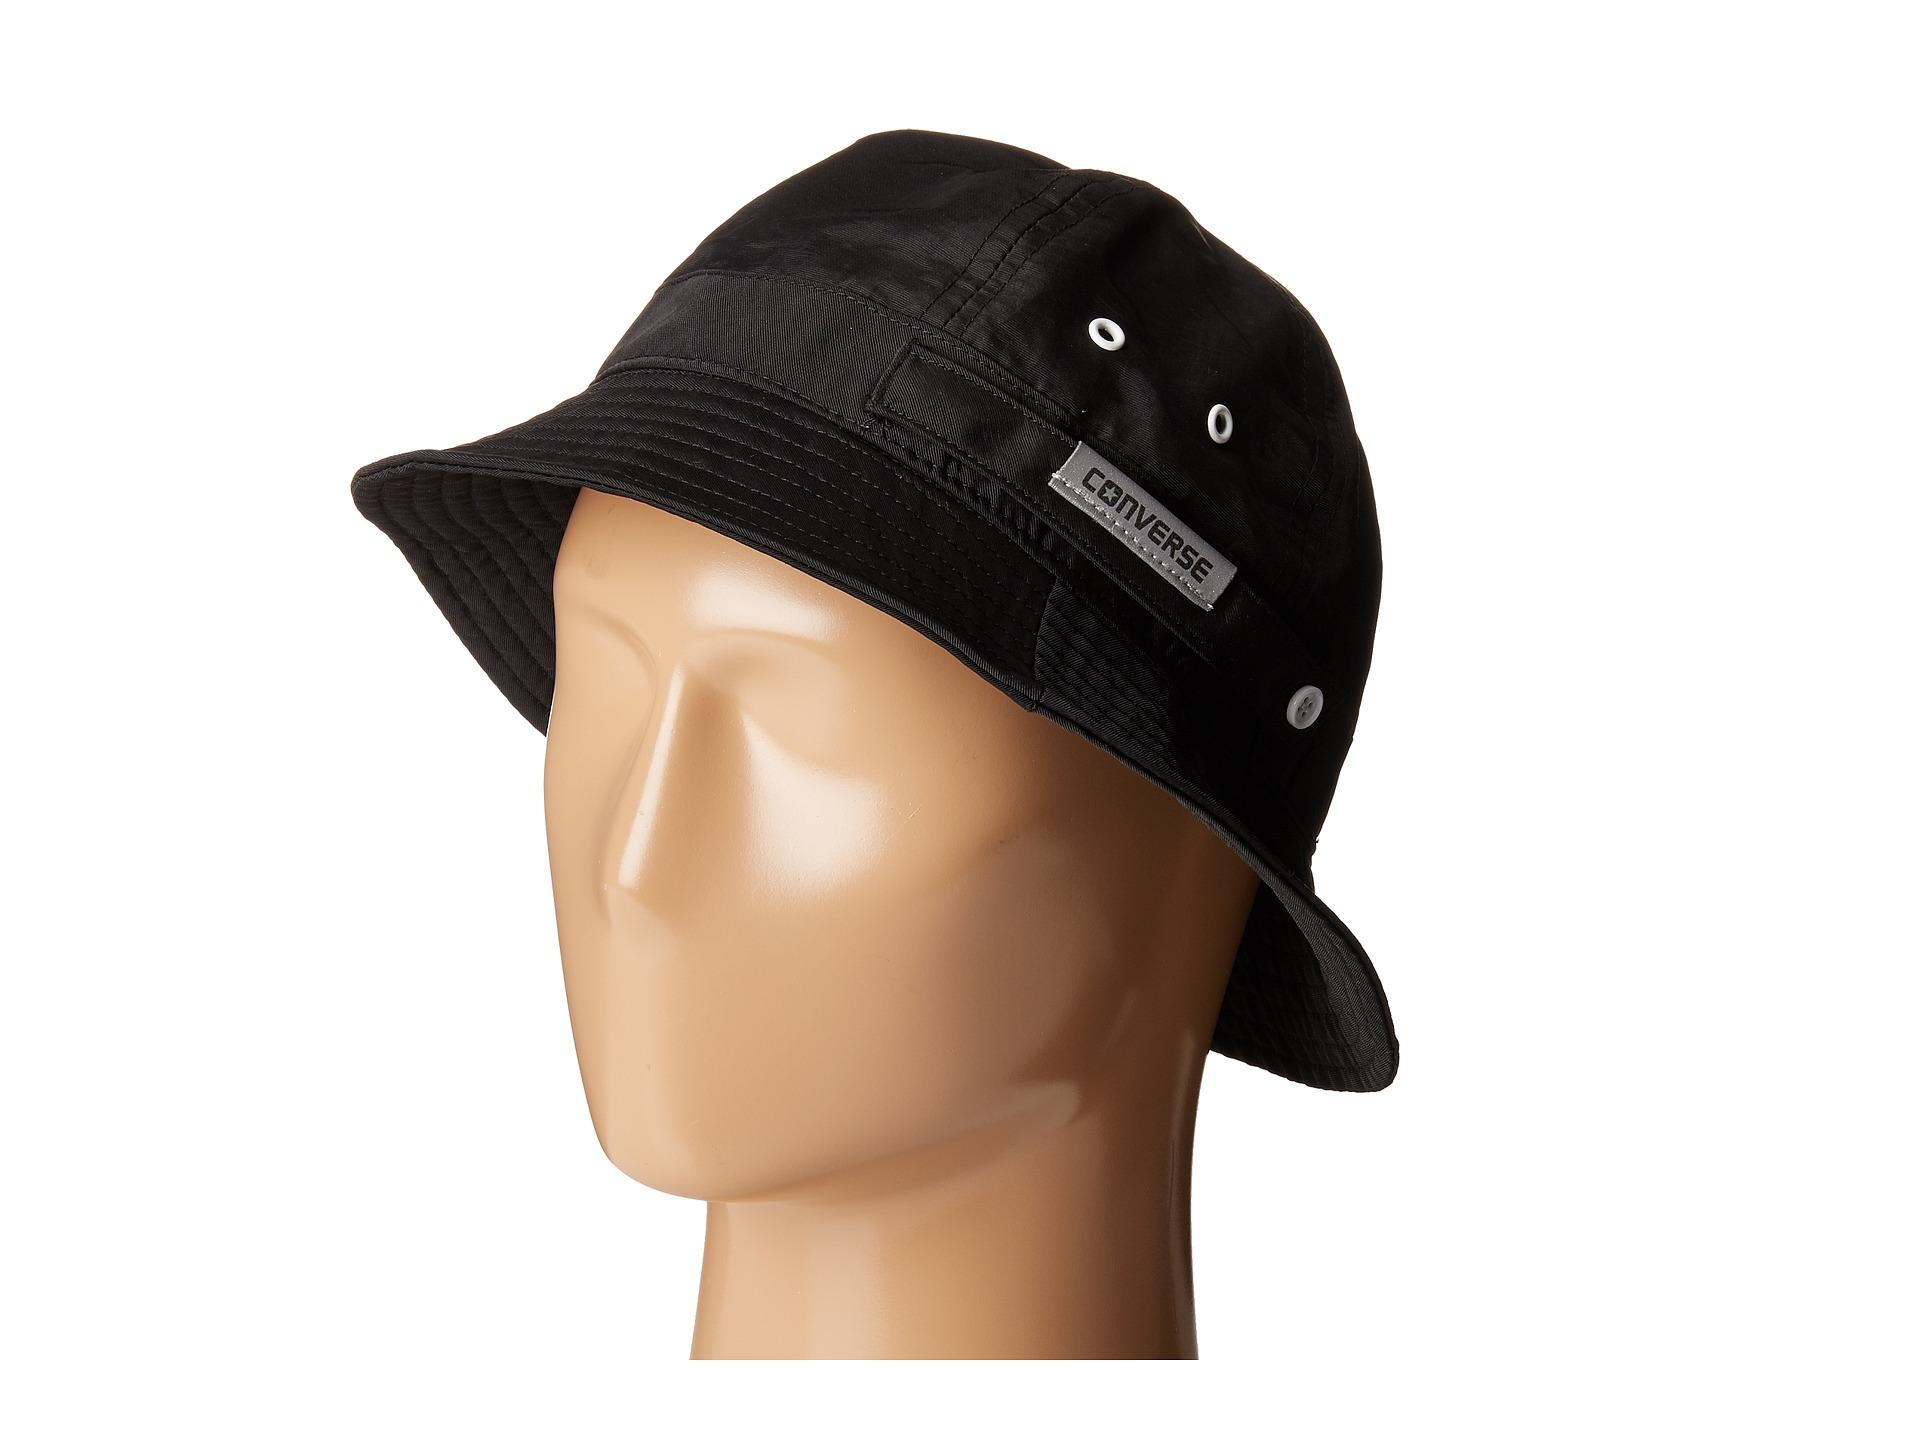 Lyst - Converse Crushable Bucket Hat in Black for Men e69028042f6